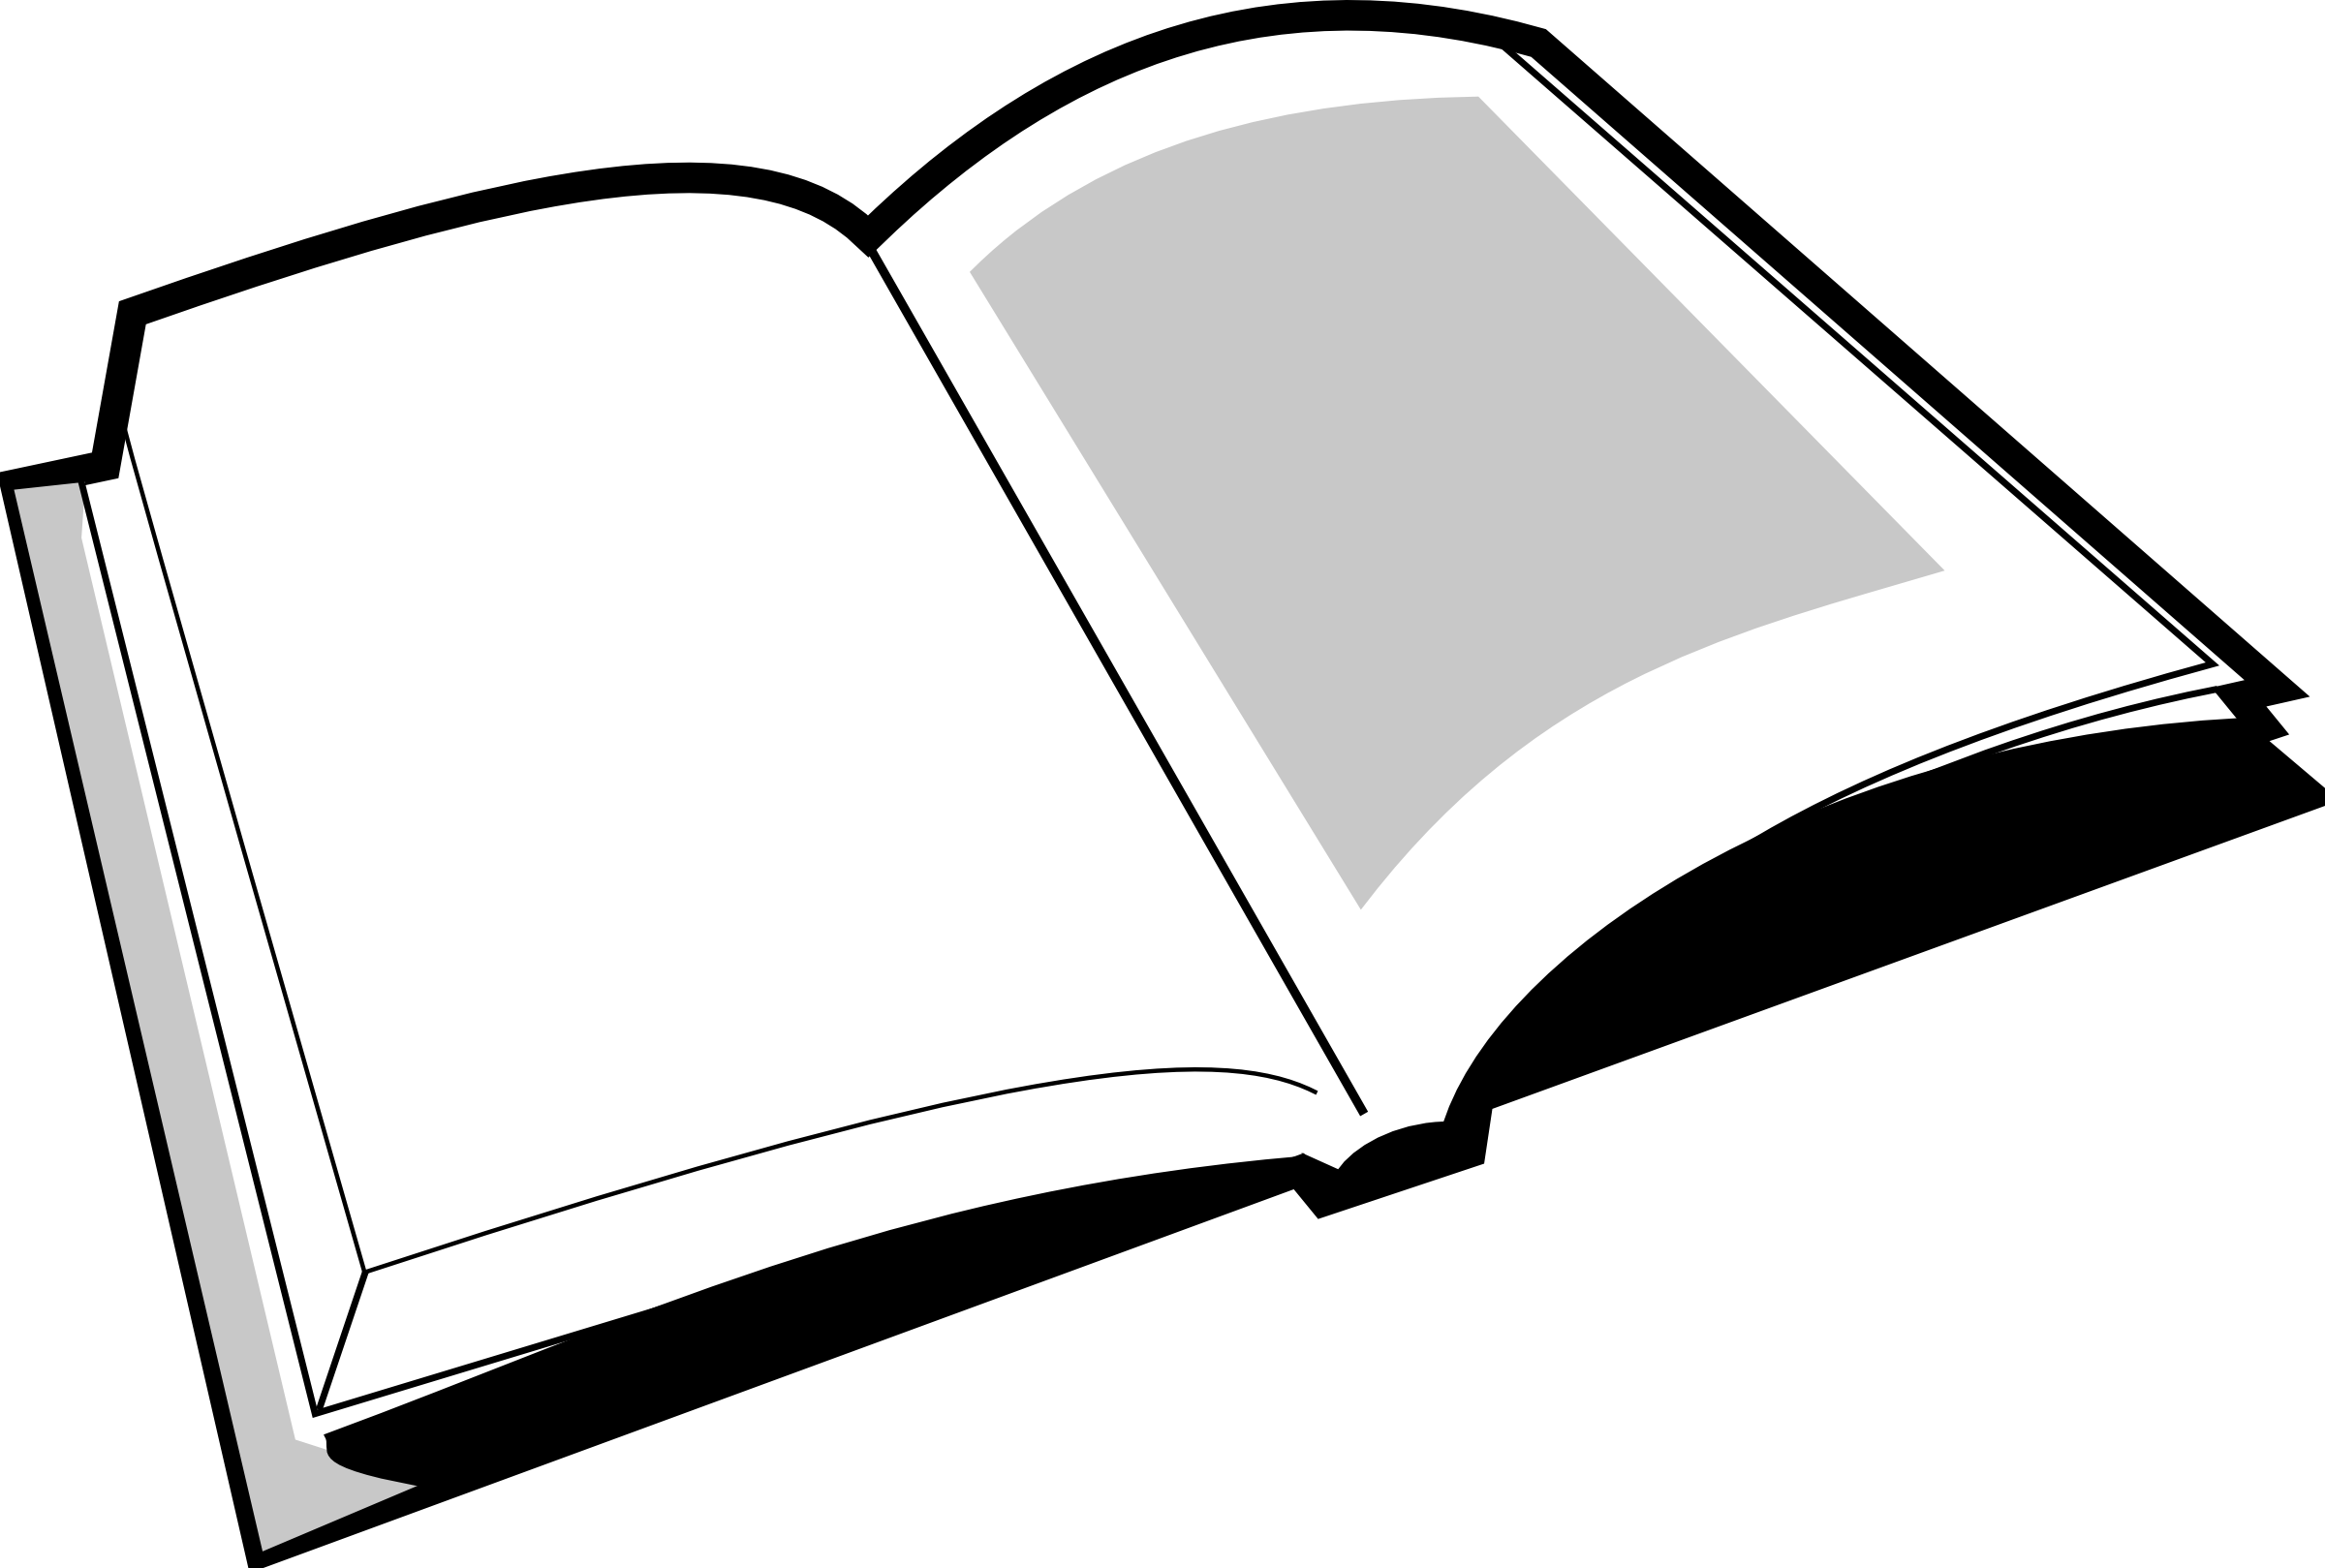 Book Black And White Free Open Book Clipart 4835830 Free